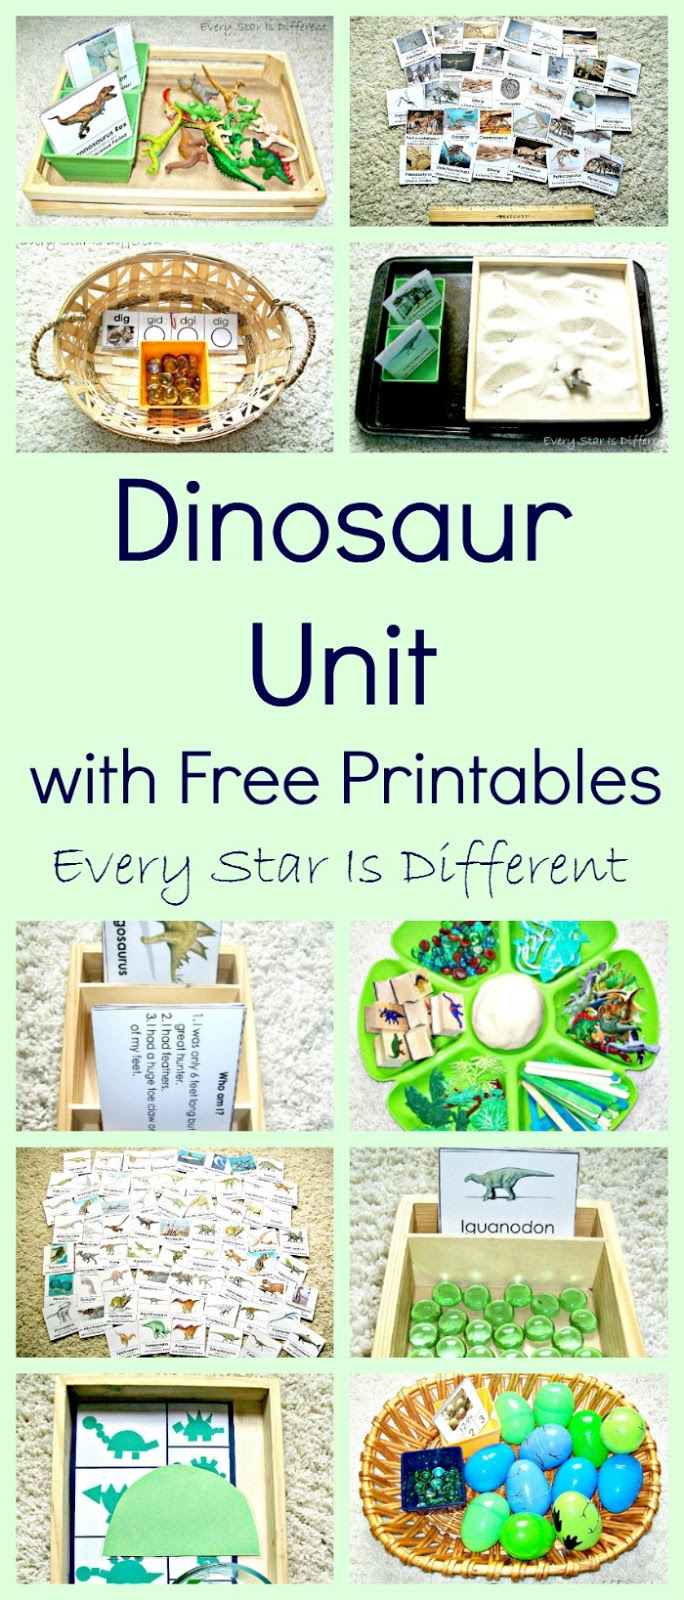 Dinosaur Unit w/ Free Printables - Every Star Is Different